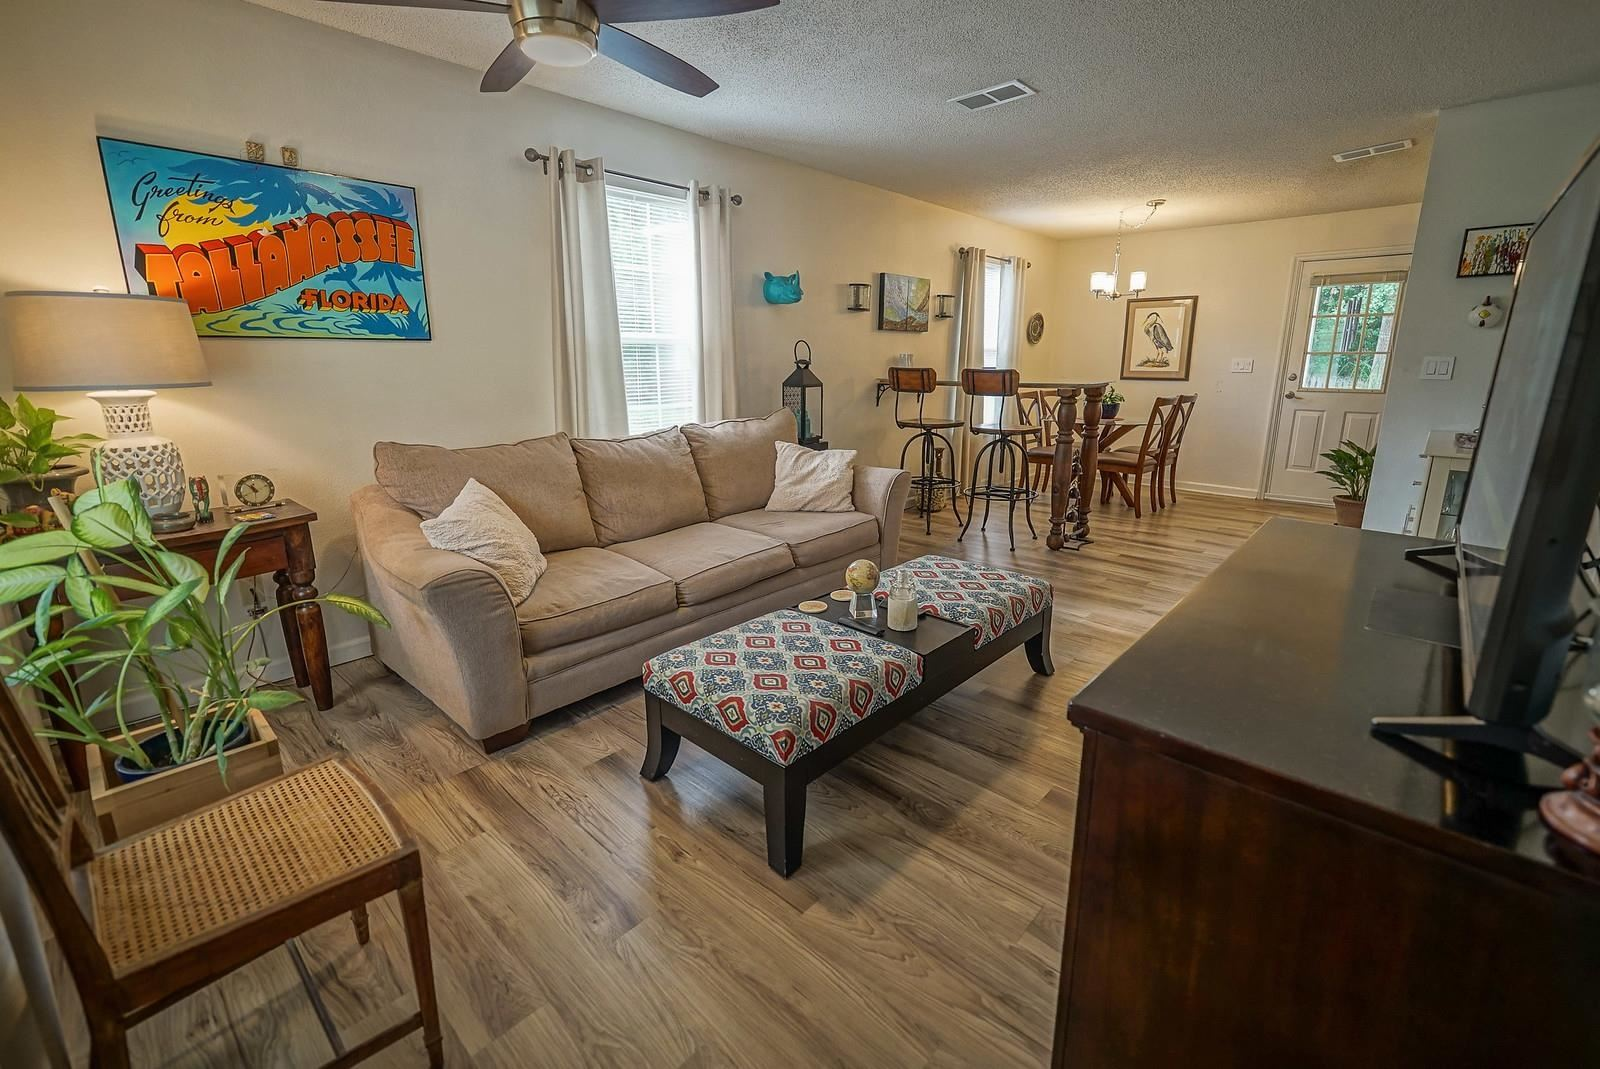 3078 Governors Court Drive, Tallahassee, FL 32301 - MLS#: 338243